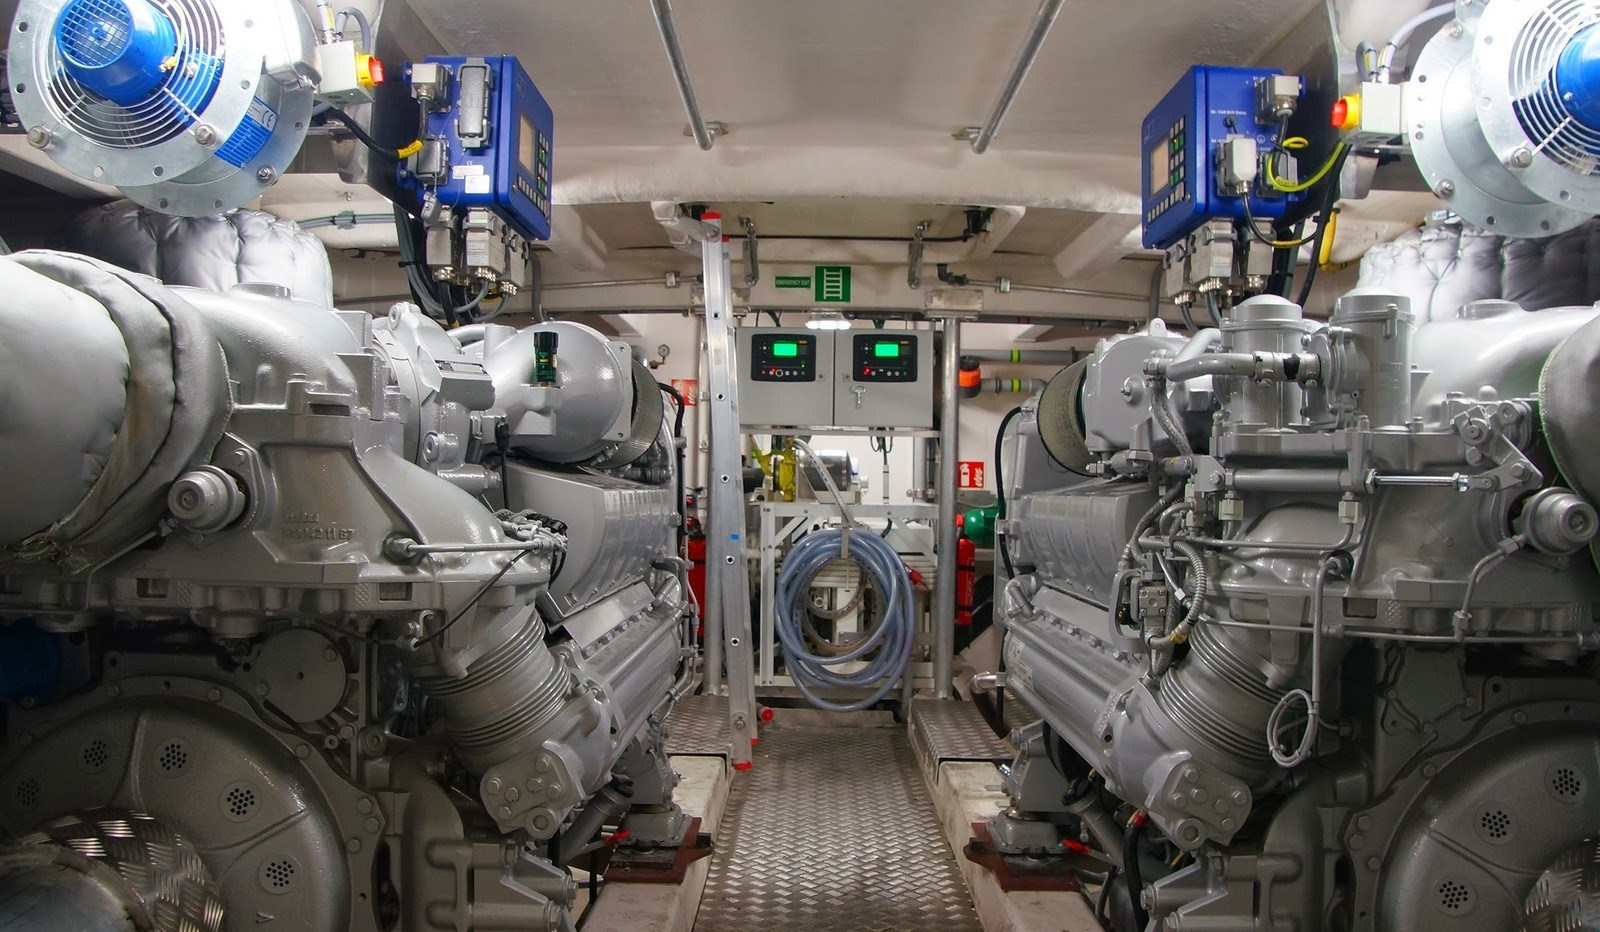 Pilot Boats on Lightweight Engines